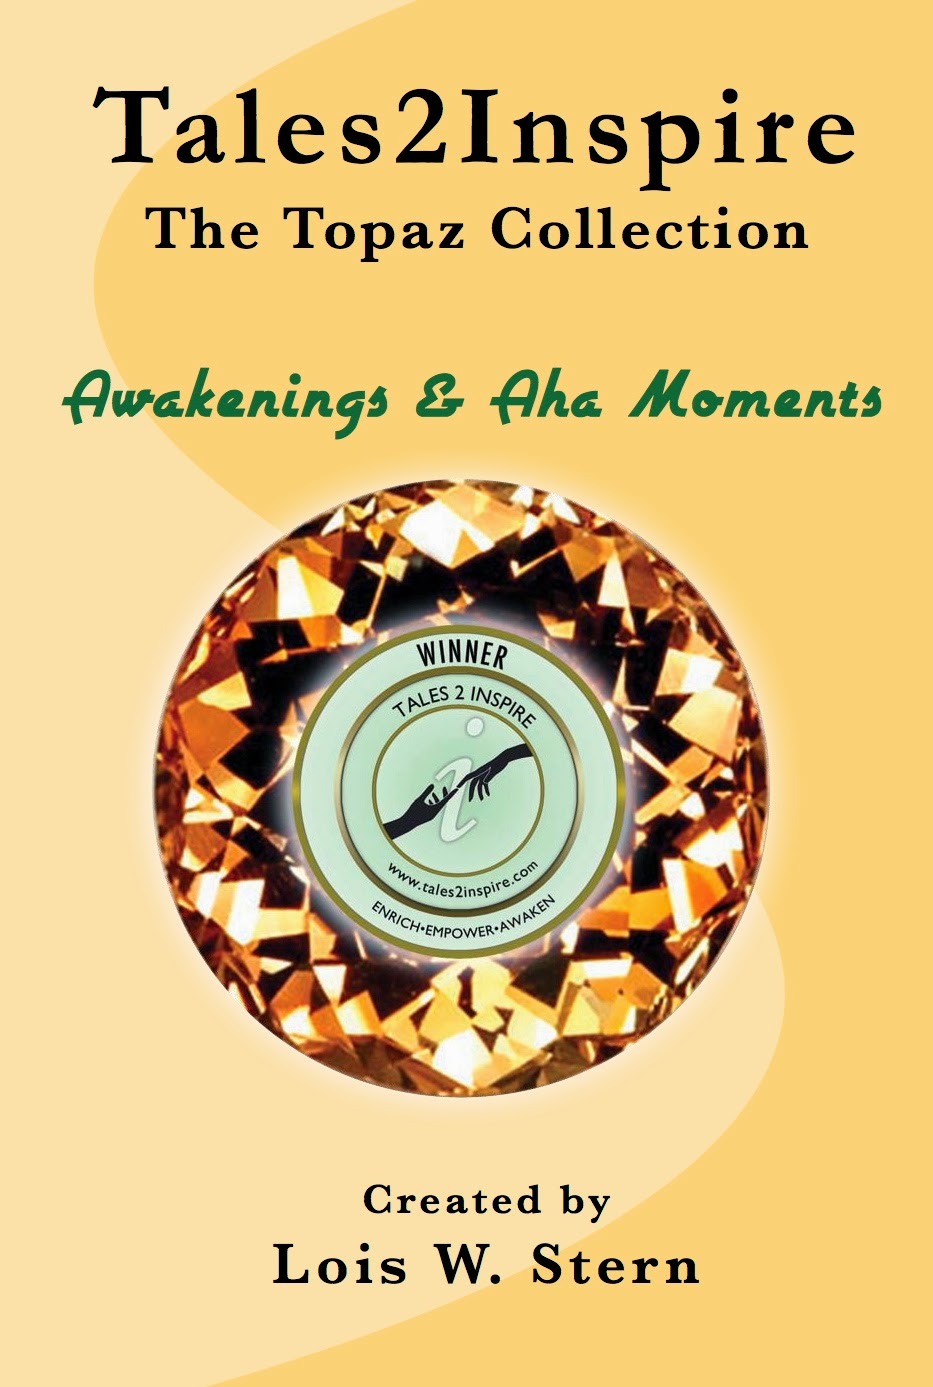 http://www.amazon.com/Tales2Inspire-Topaz-Collection-Awakenings-Moments-ebook/dp/B00GNL1W5C/ref=la_B005HOO640_1_1?s=books&ie=UTF8&qid=1397241057&sr=1-1